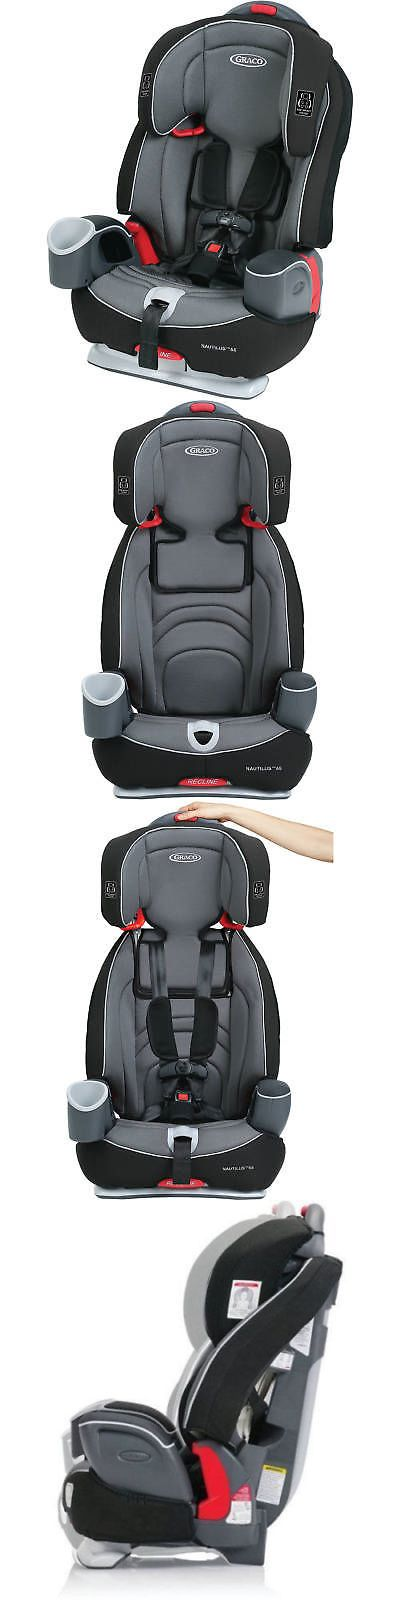 Car Safety Seats 66692 Graco Nautilus 65 3 In 1 Multi Use Harness Booster Convertible Toddler Seat BUY IT NOW ONLY 12464 On EBay